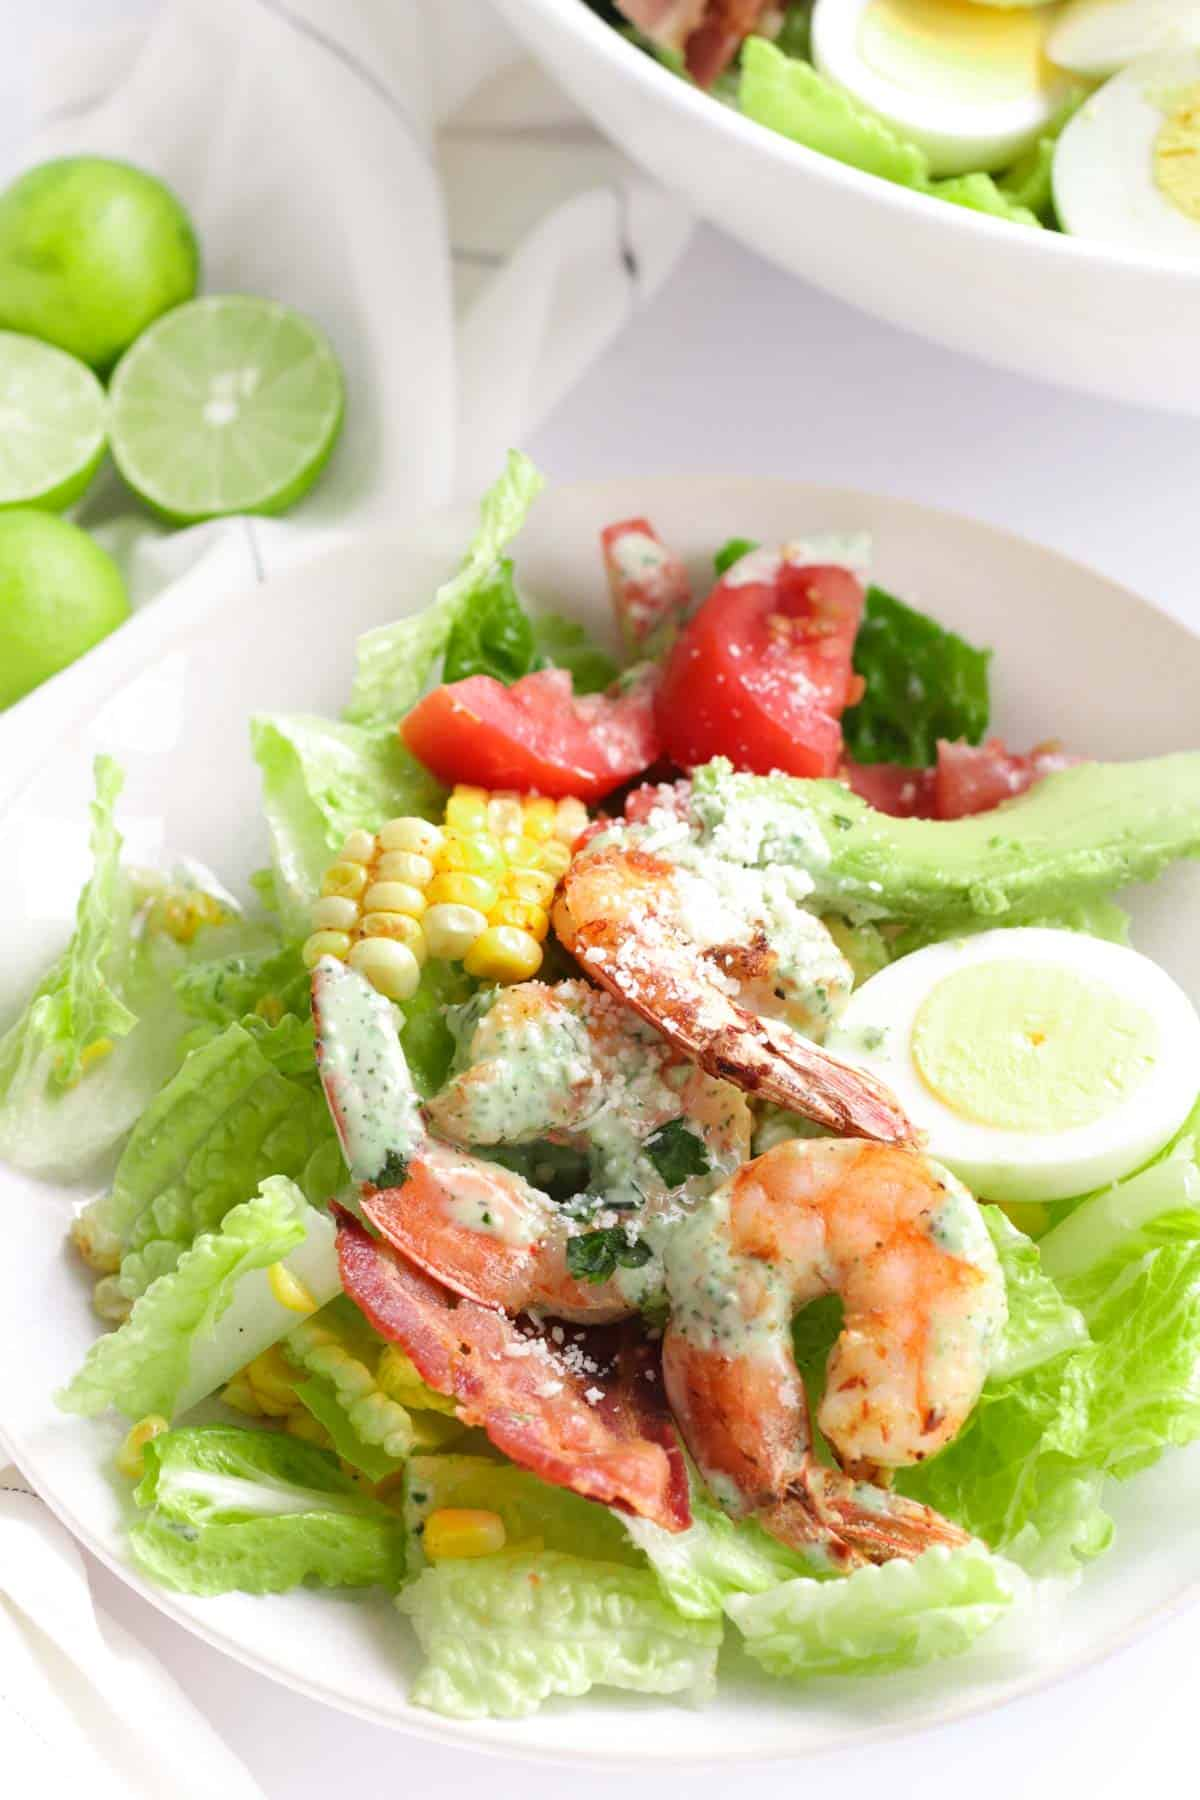 serving of the grilled shrimp salad on a small white plate with the shrimp topped with a drizzle of dressing